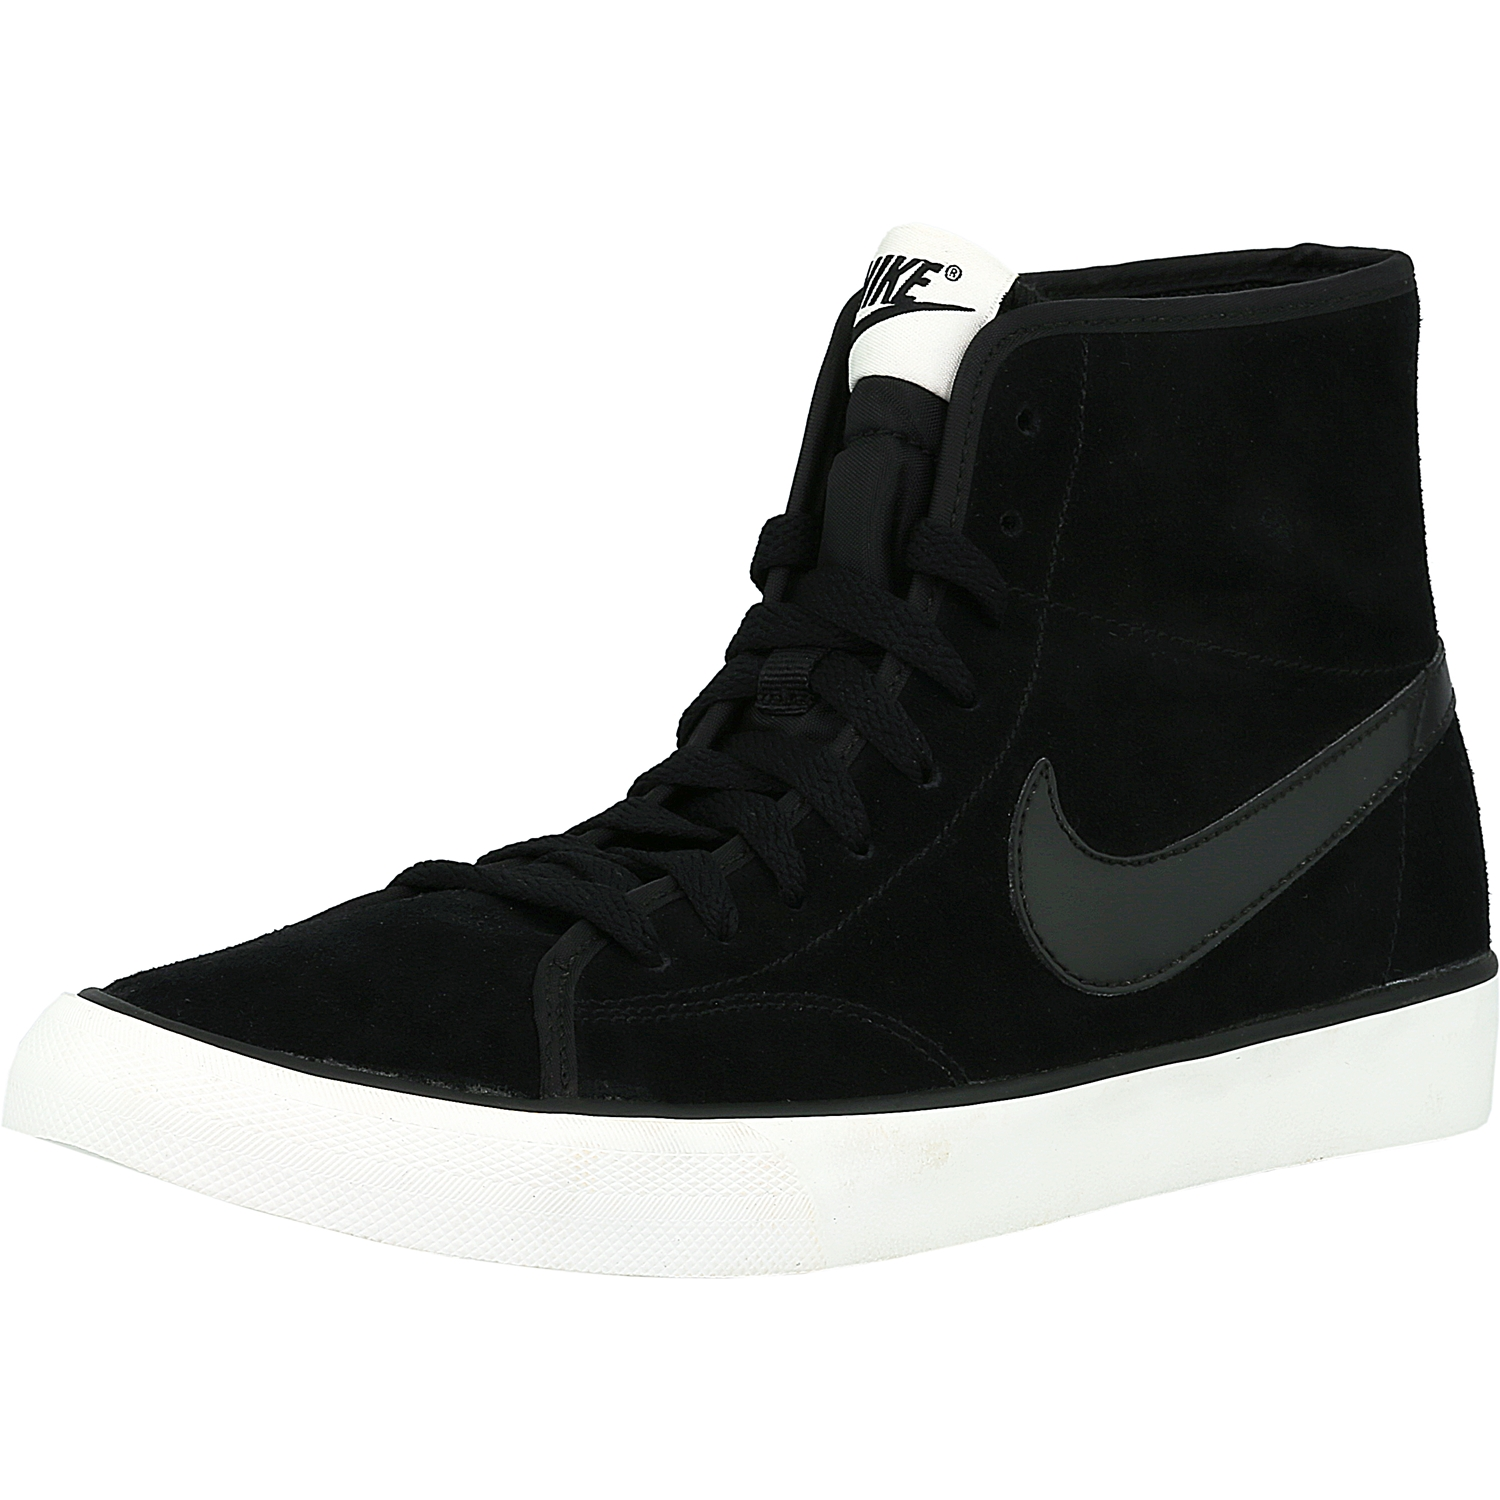 Nike Women's Ankle-High 630656 002 Ankle-High Women's Canvas Fashion Sneaker - 10M c36a6b